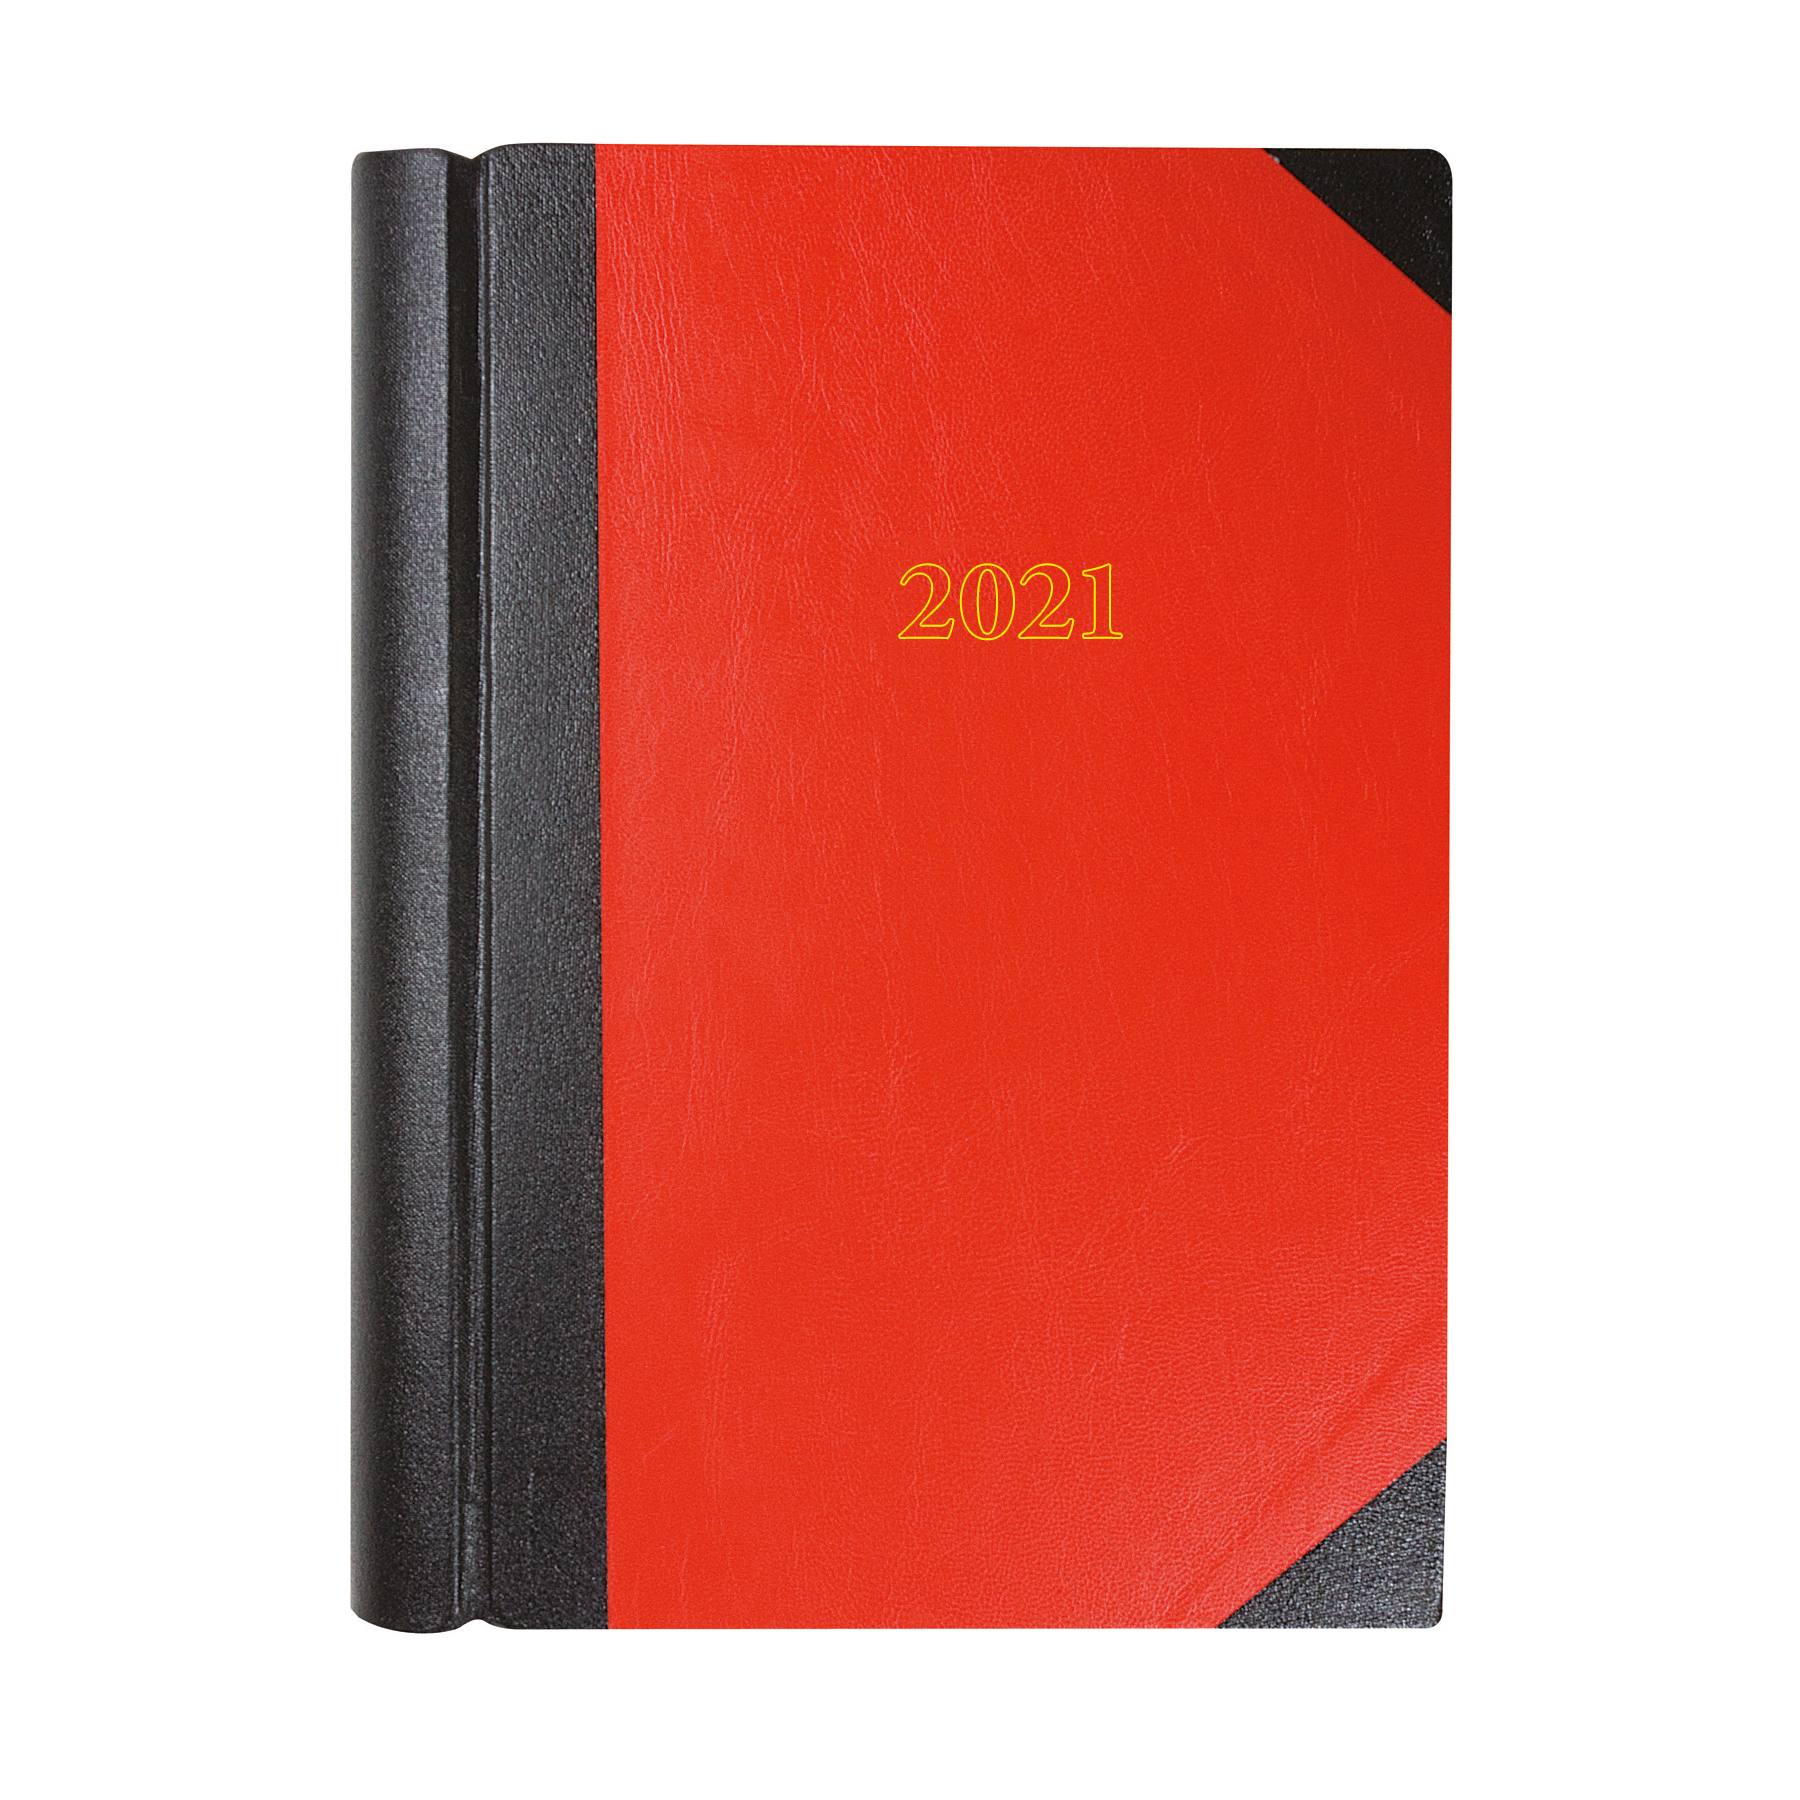 Diaries Collins 2021 Desk Diary 2 Pages to a Day Sewn Binding A4 297x210mm Red Ref 42 Red 2021